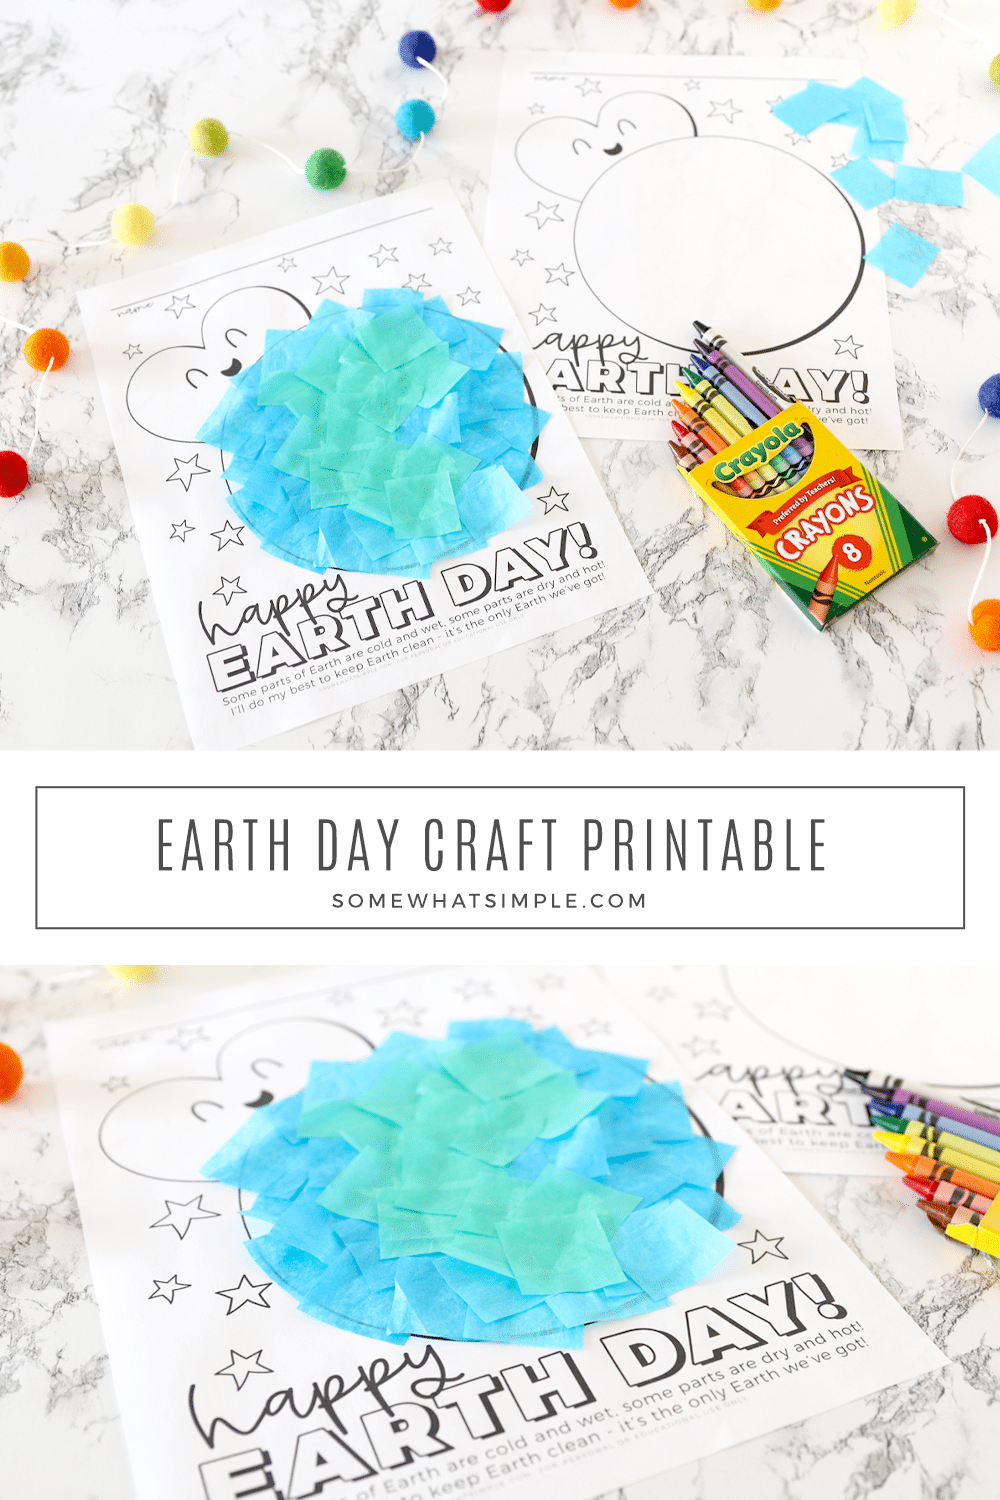 Celebrate Earth Day at home or in the classroom with a colorful Earth Day craft that's easy to do and so much fun for the kids! via @somewhatsimple